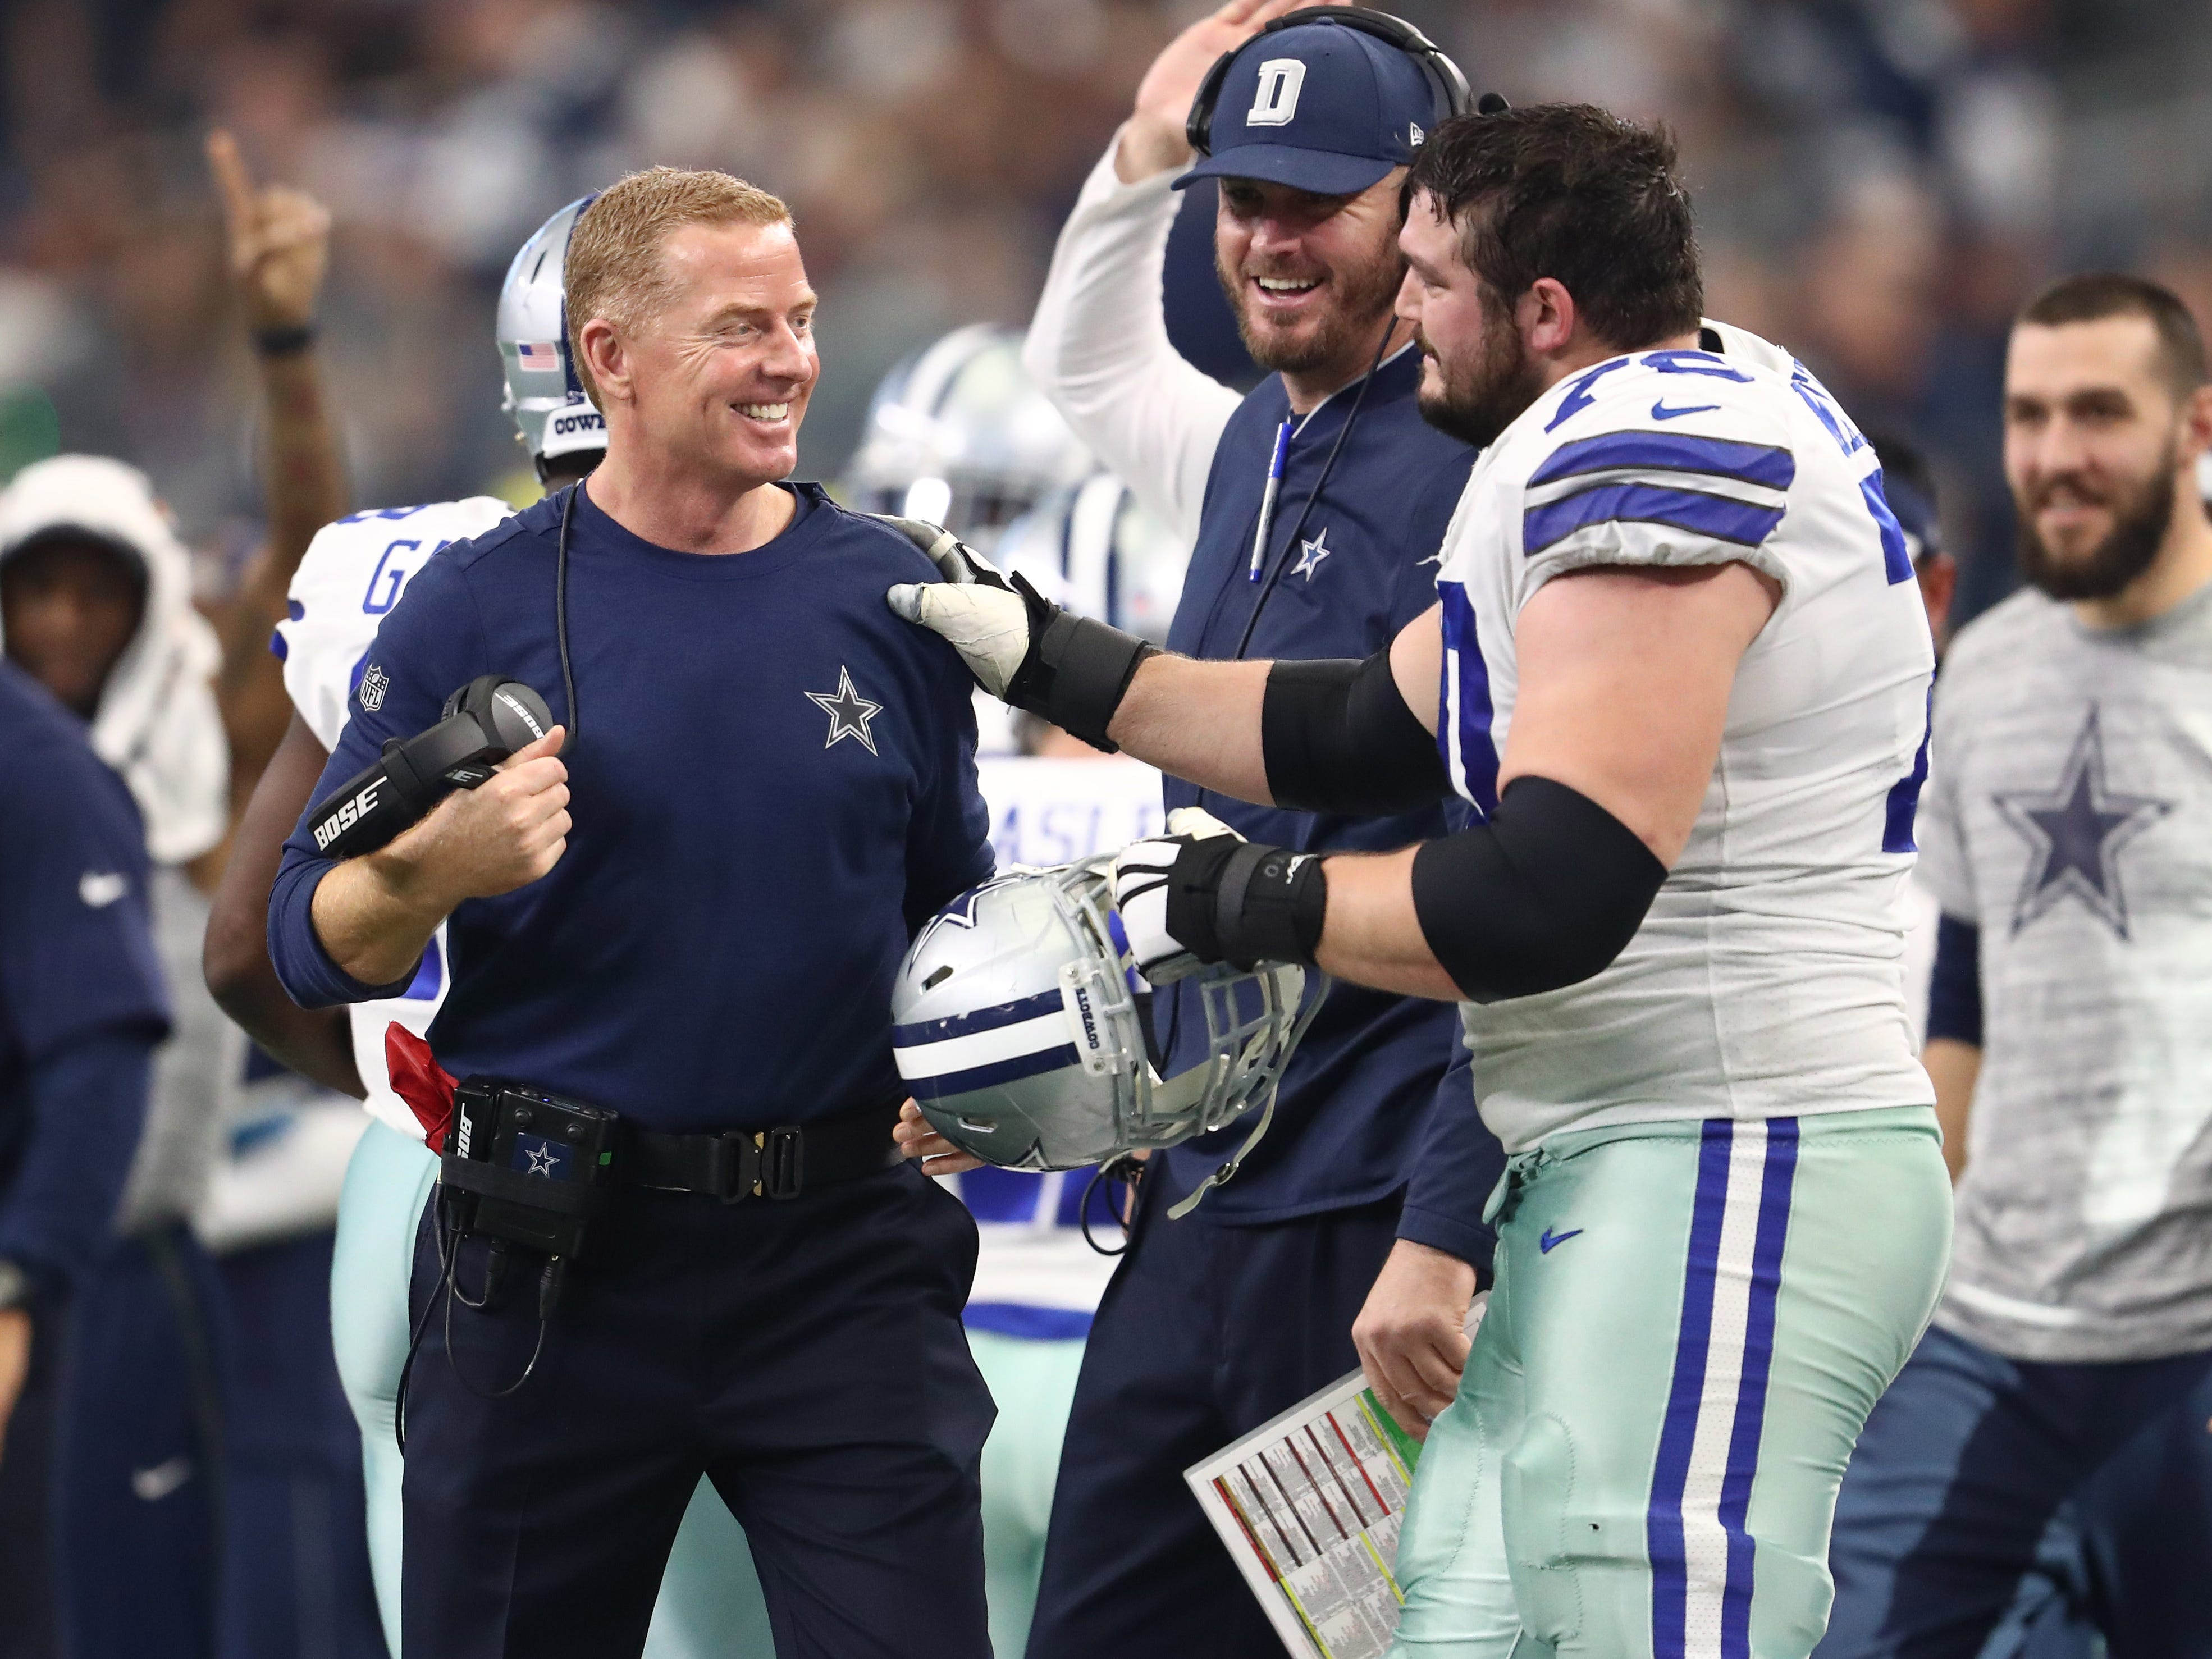 11. Cowboys (13): They'd probably love to see Philly in playoff opener, but it's not possible. Minnesota and Seattle very capable of extending Dallas' 21st Century pattern of postseason putridity.